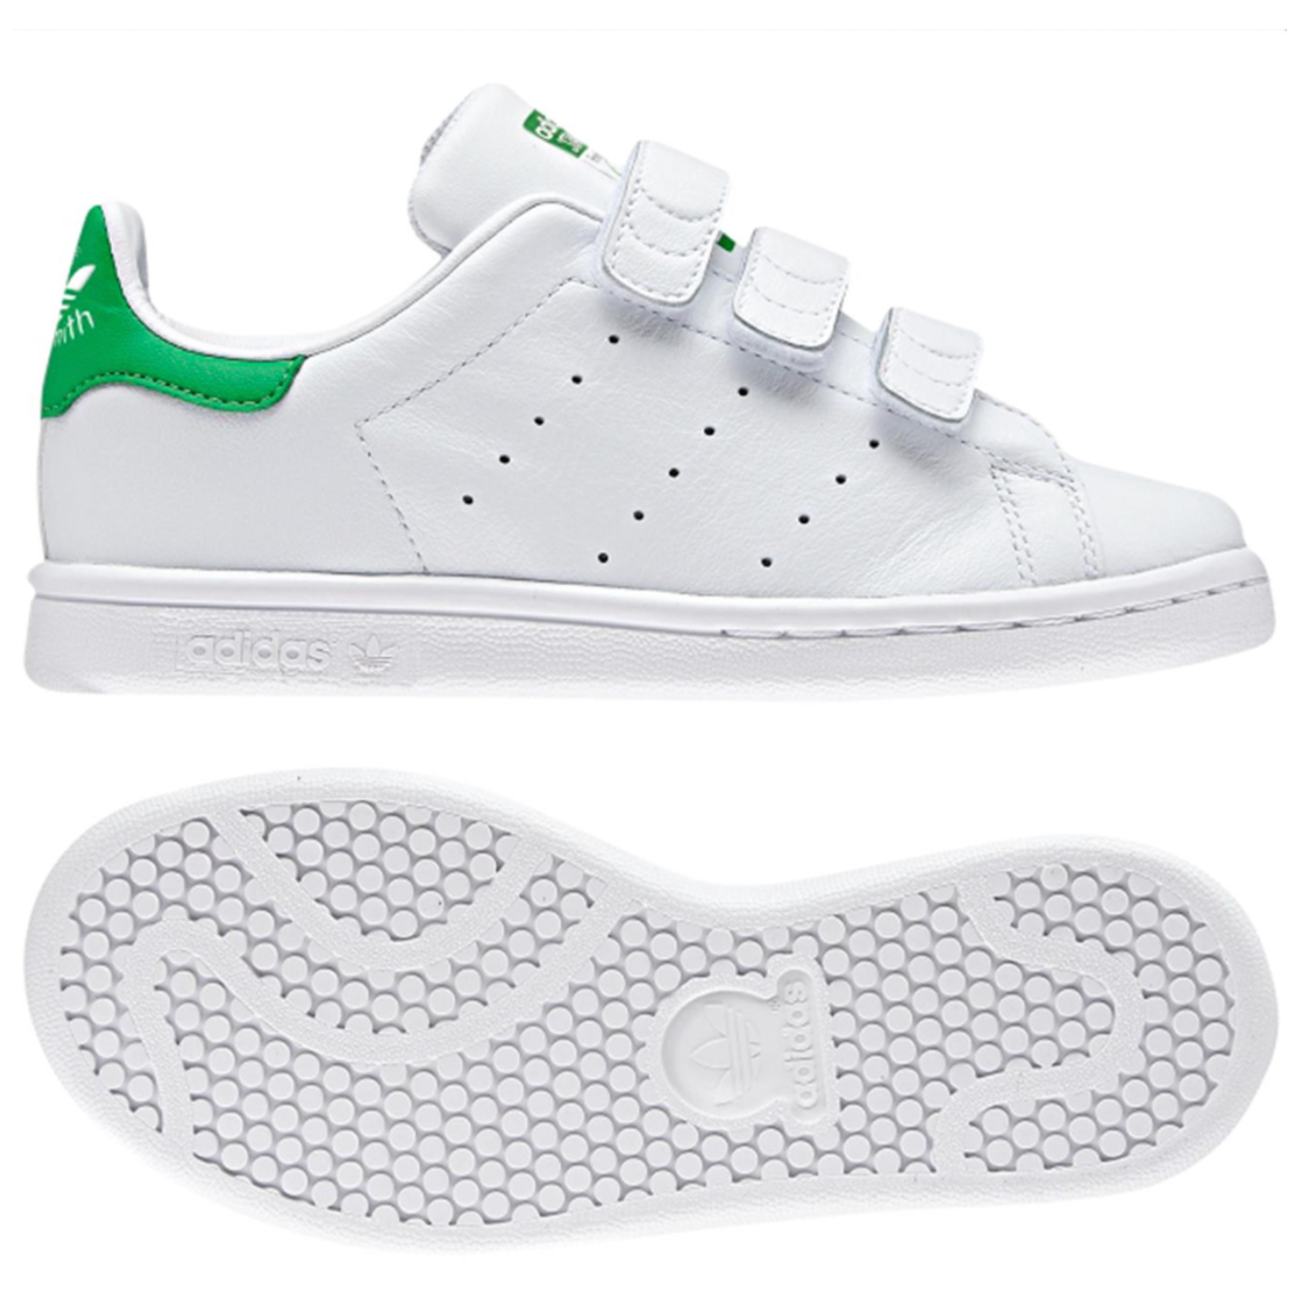 sports shoes f0534 34767 adidas Stan Smith Sneakers White/Green M20607